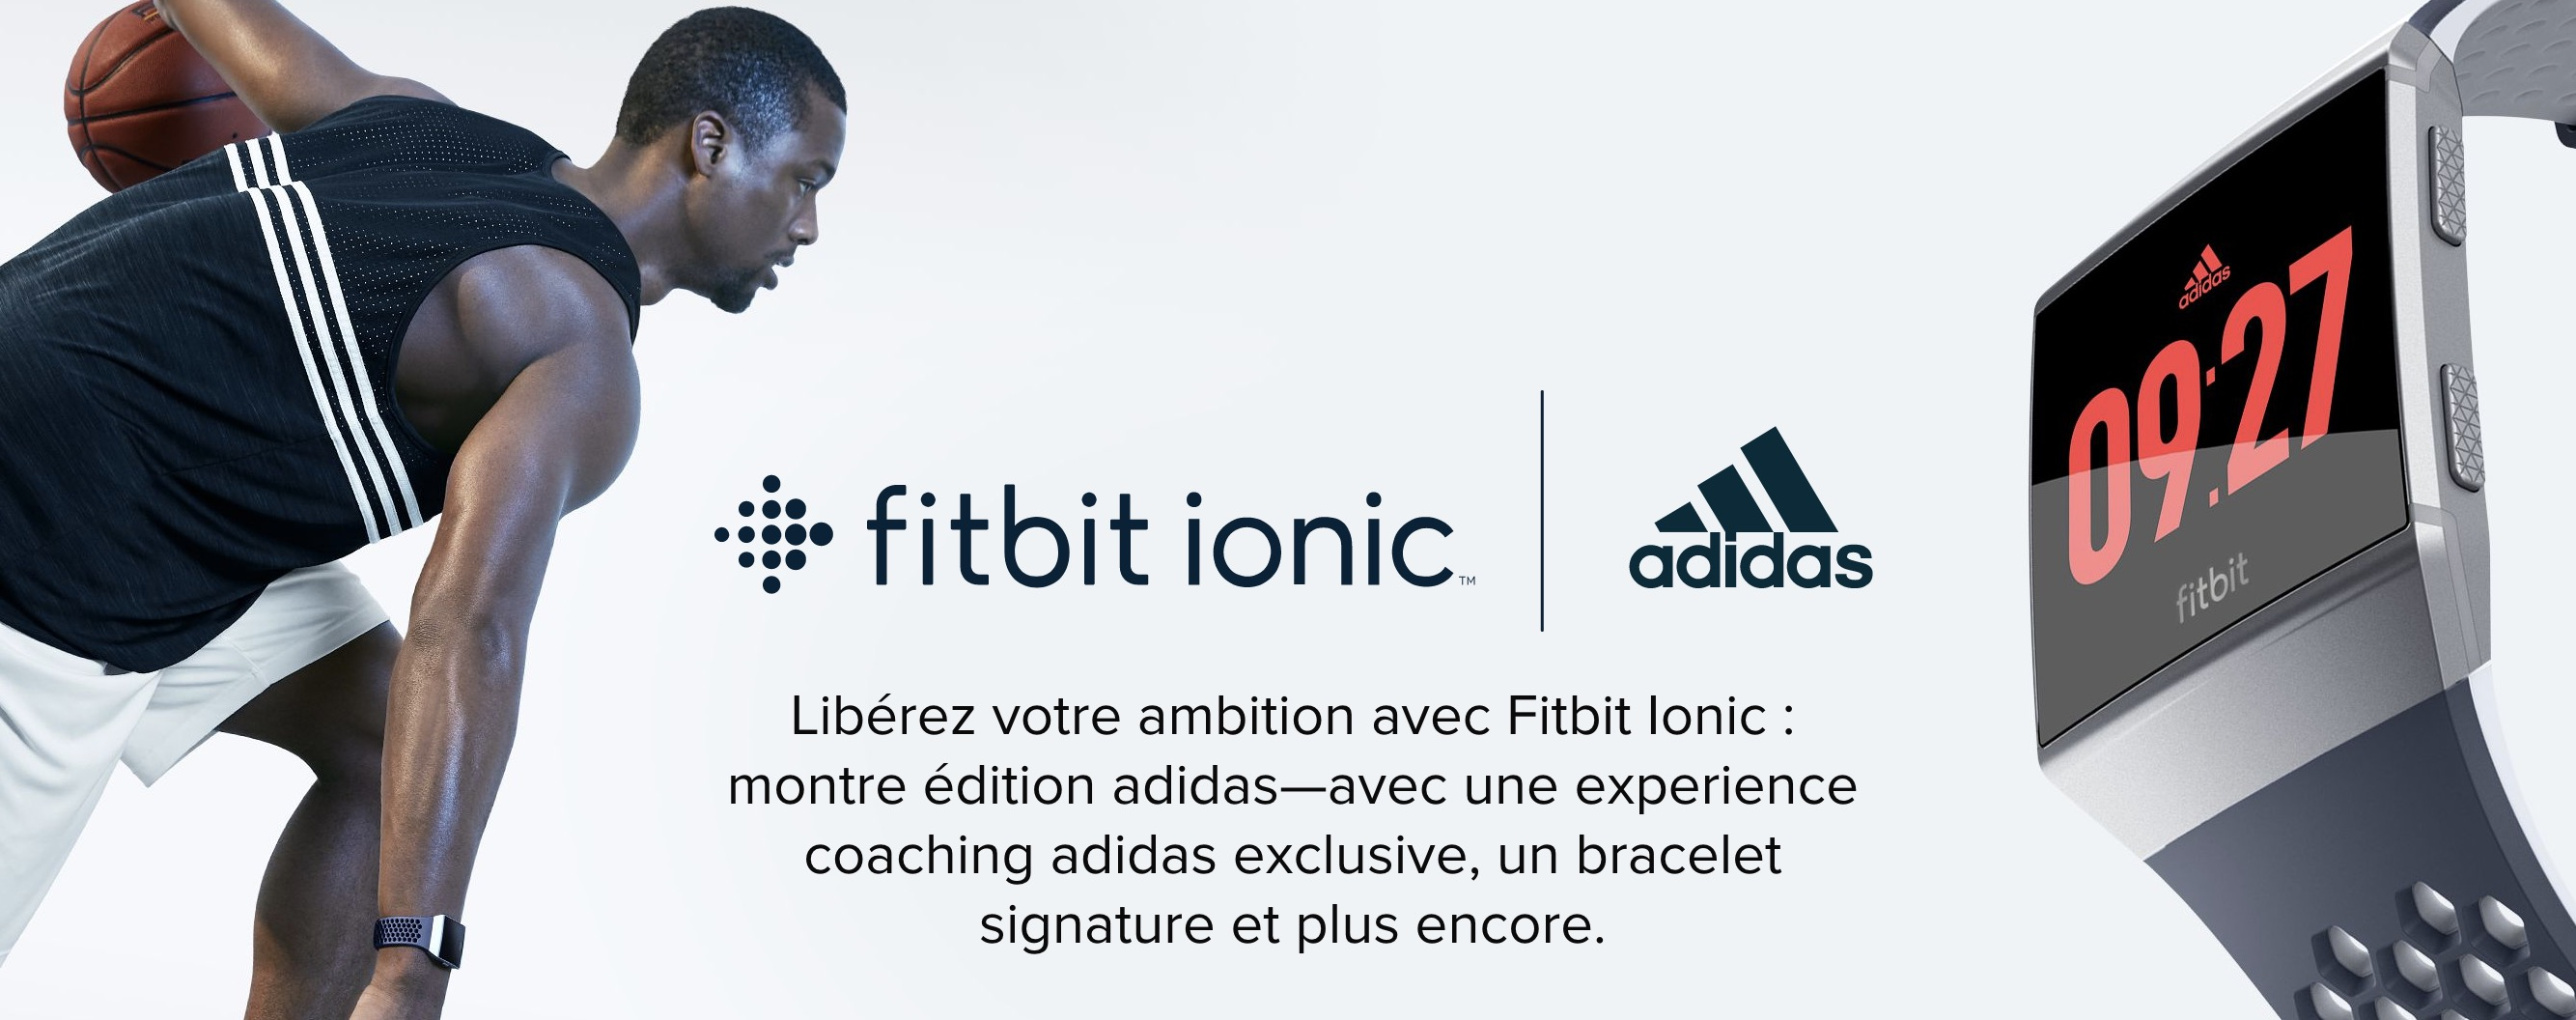 adidas-fitbit-ionic-wearable-montre-connectee